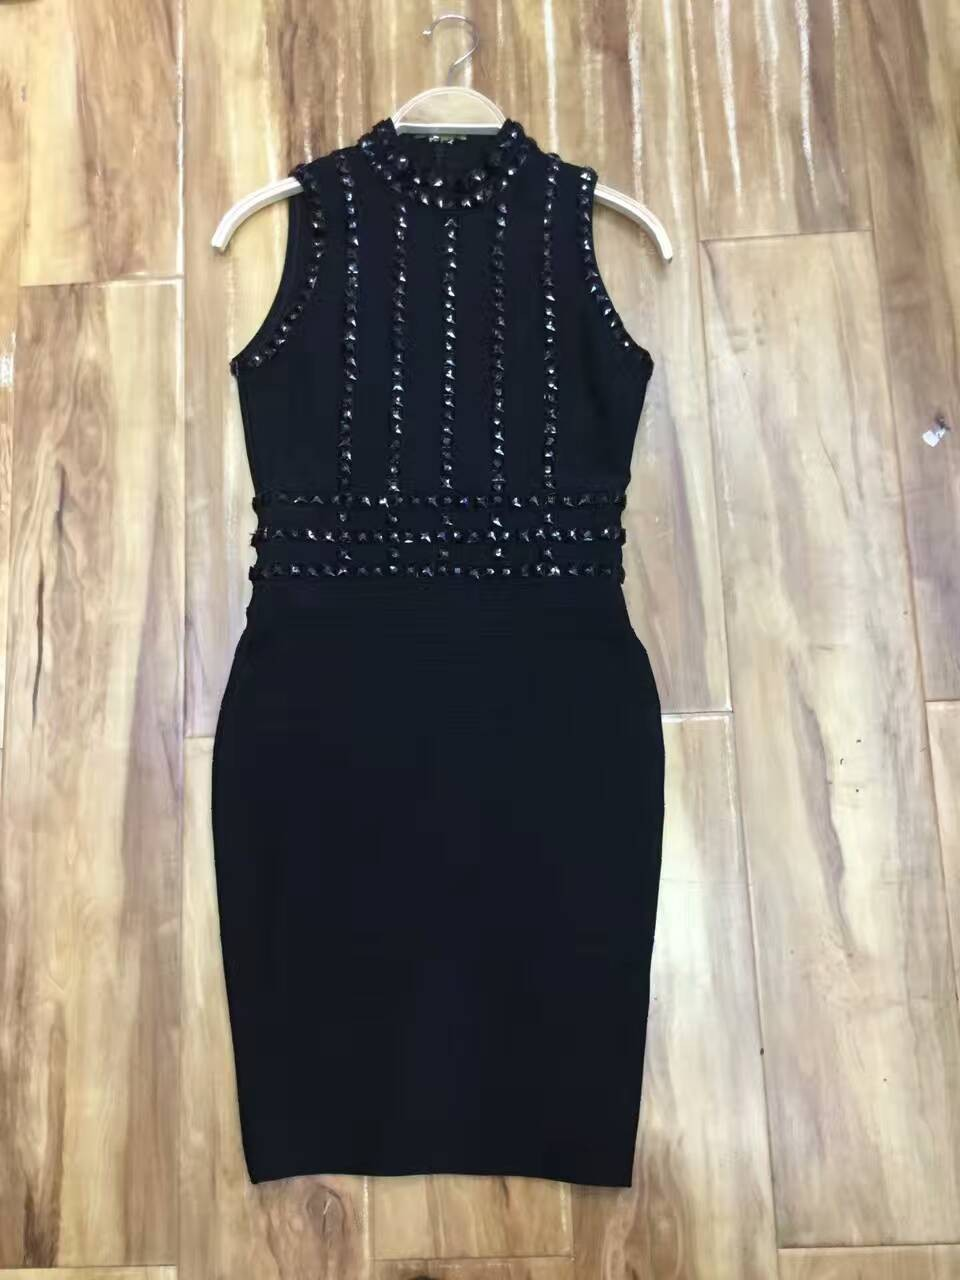 wholesale 2017 new High quality evening dresses Black sleeveless heavy handmade rivet beading bandage dress